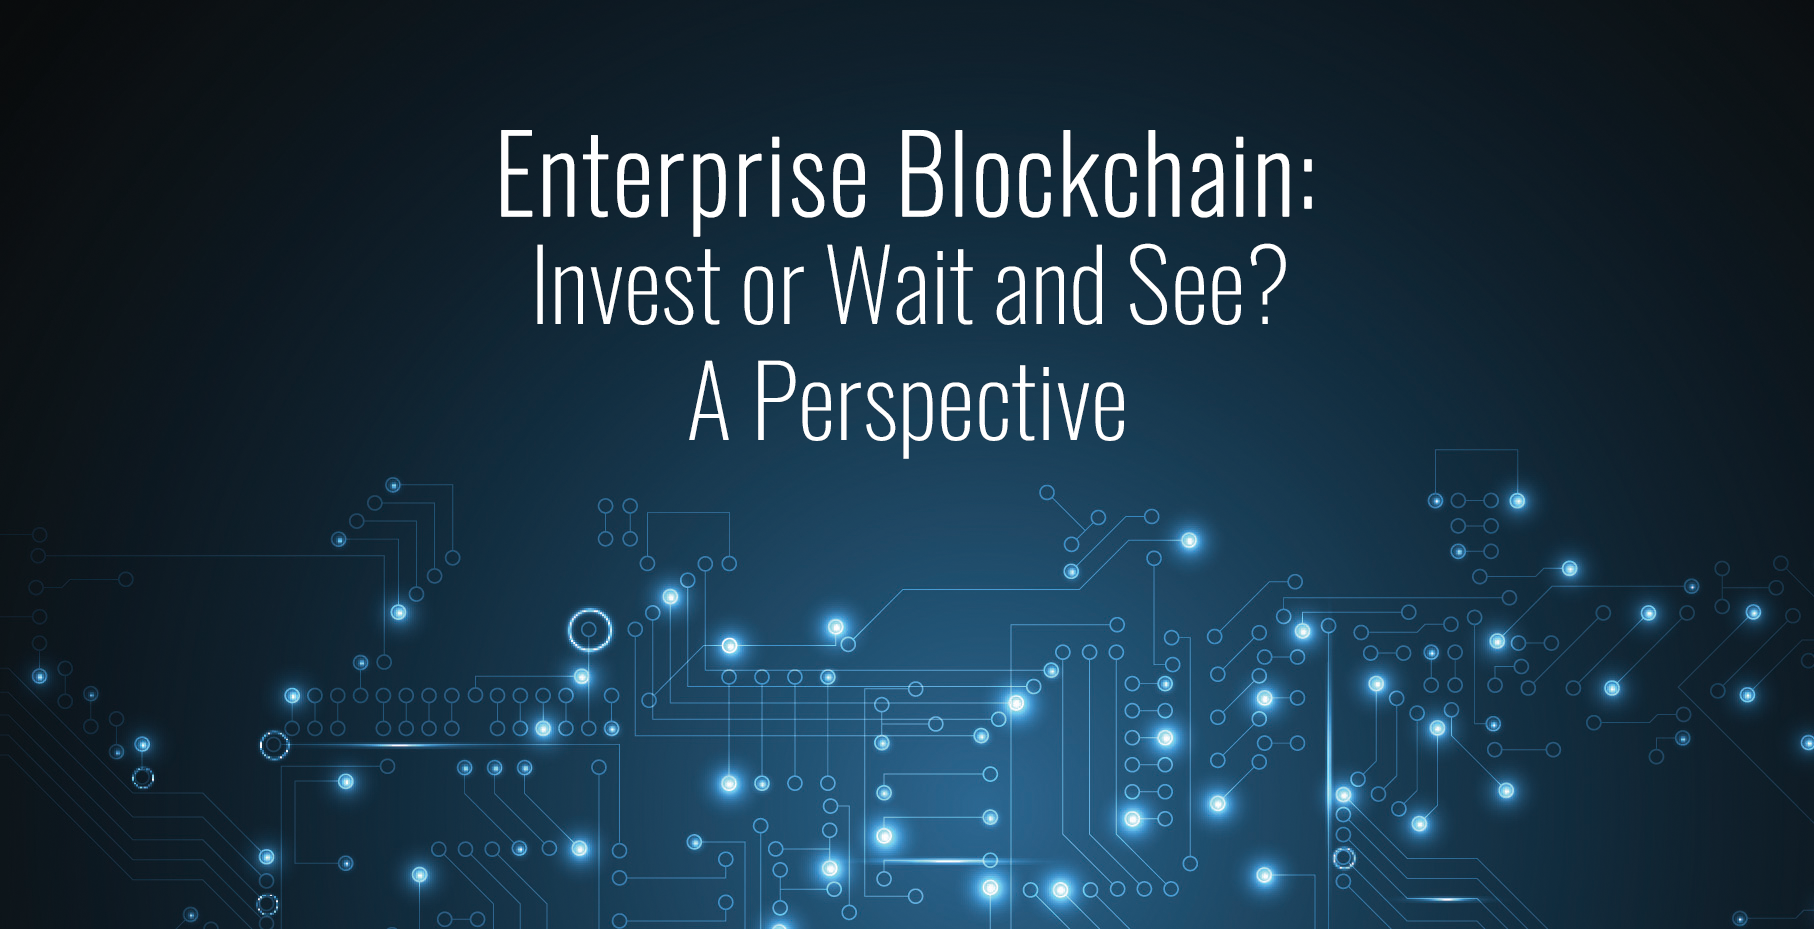 Blockchain invest or wait